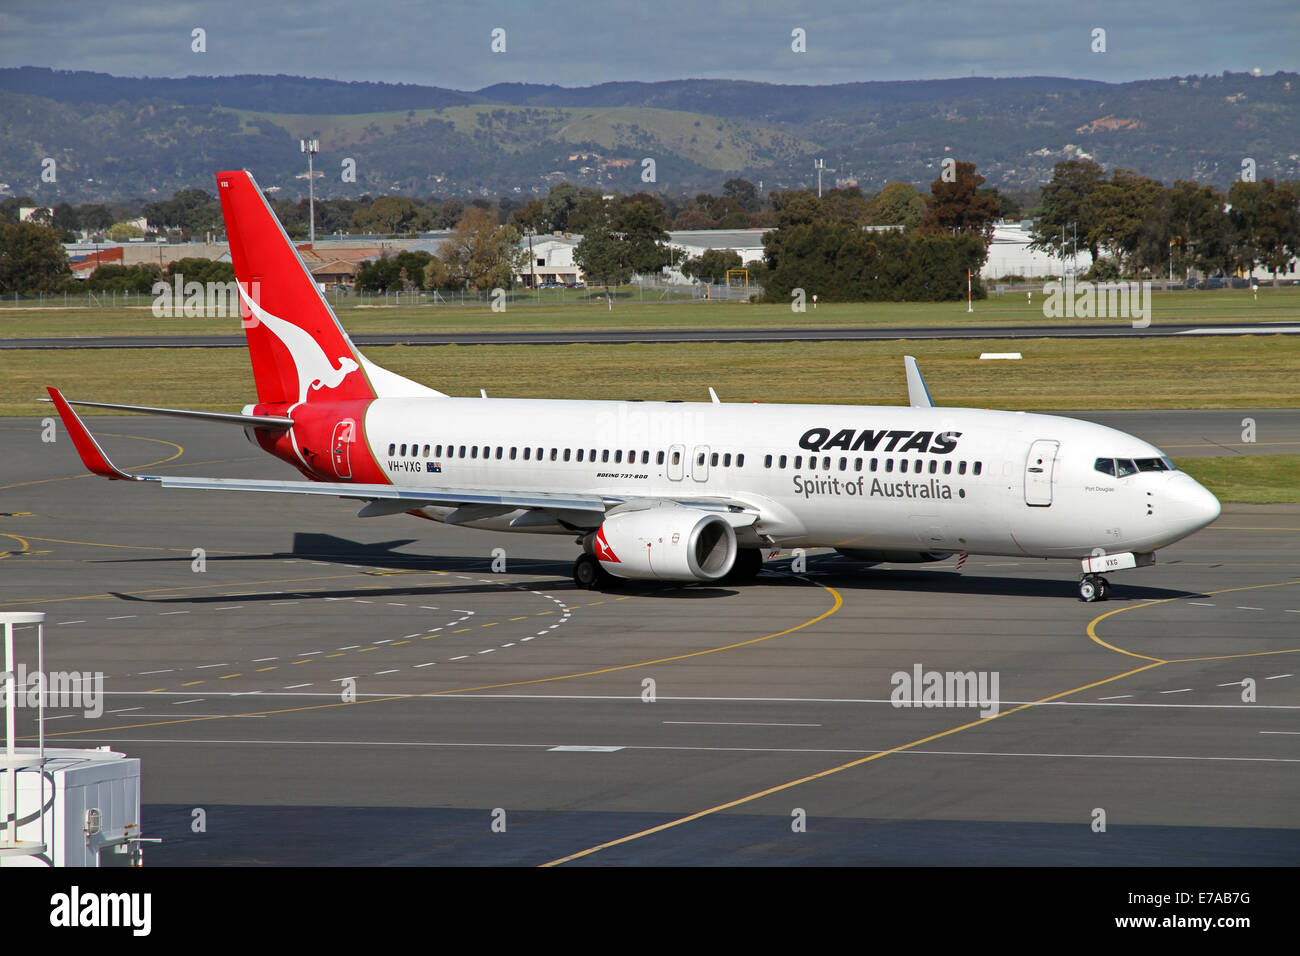 A Qantas Boeing 737-800 aircraft preparing to dock at an airbridge at Adelaide Airport Australia - Stock Image